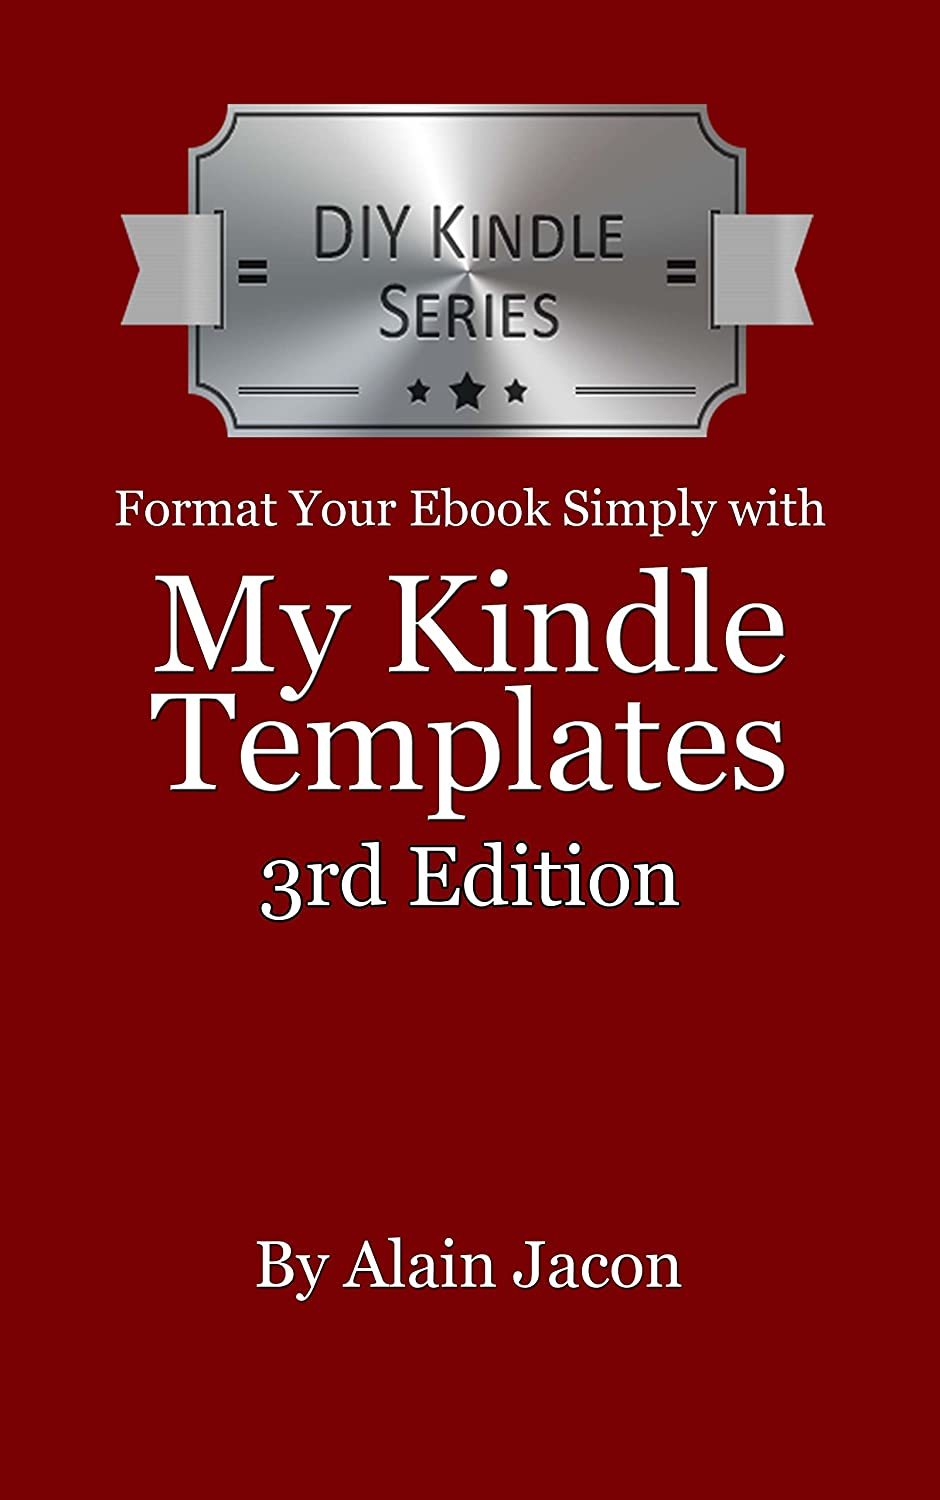 Format Your Ebook Simply with My Kindle Templates (Kindle DIY ...